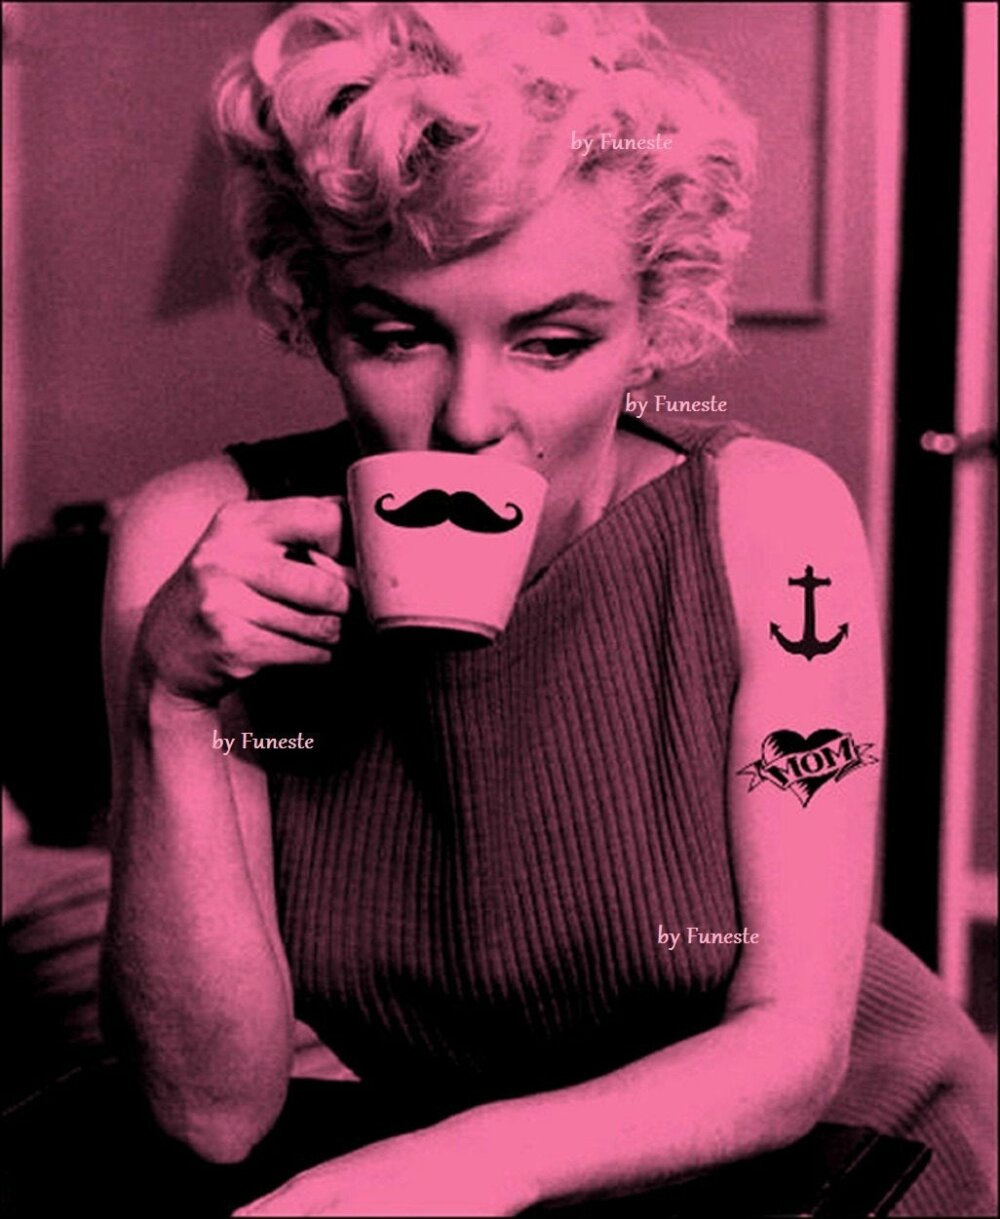 Carte Postale Rock n Love, Marilyn, Glam, Rockabilly, Pin up, Pink, Photographie, Art, Moustache, Tattoo, Voeux, Galentin, Tatouage, Maman